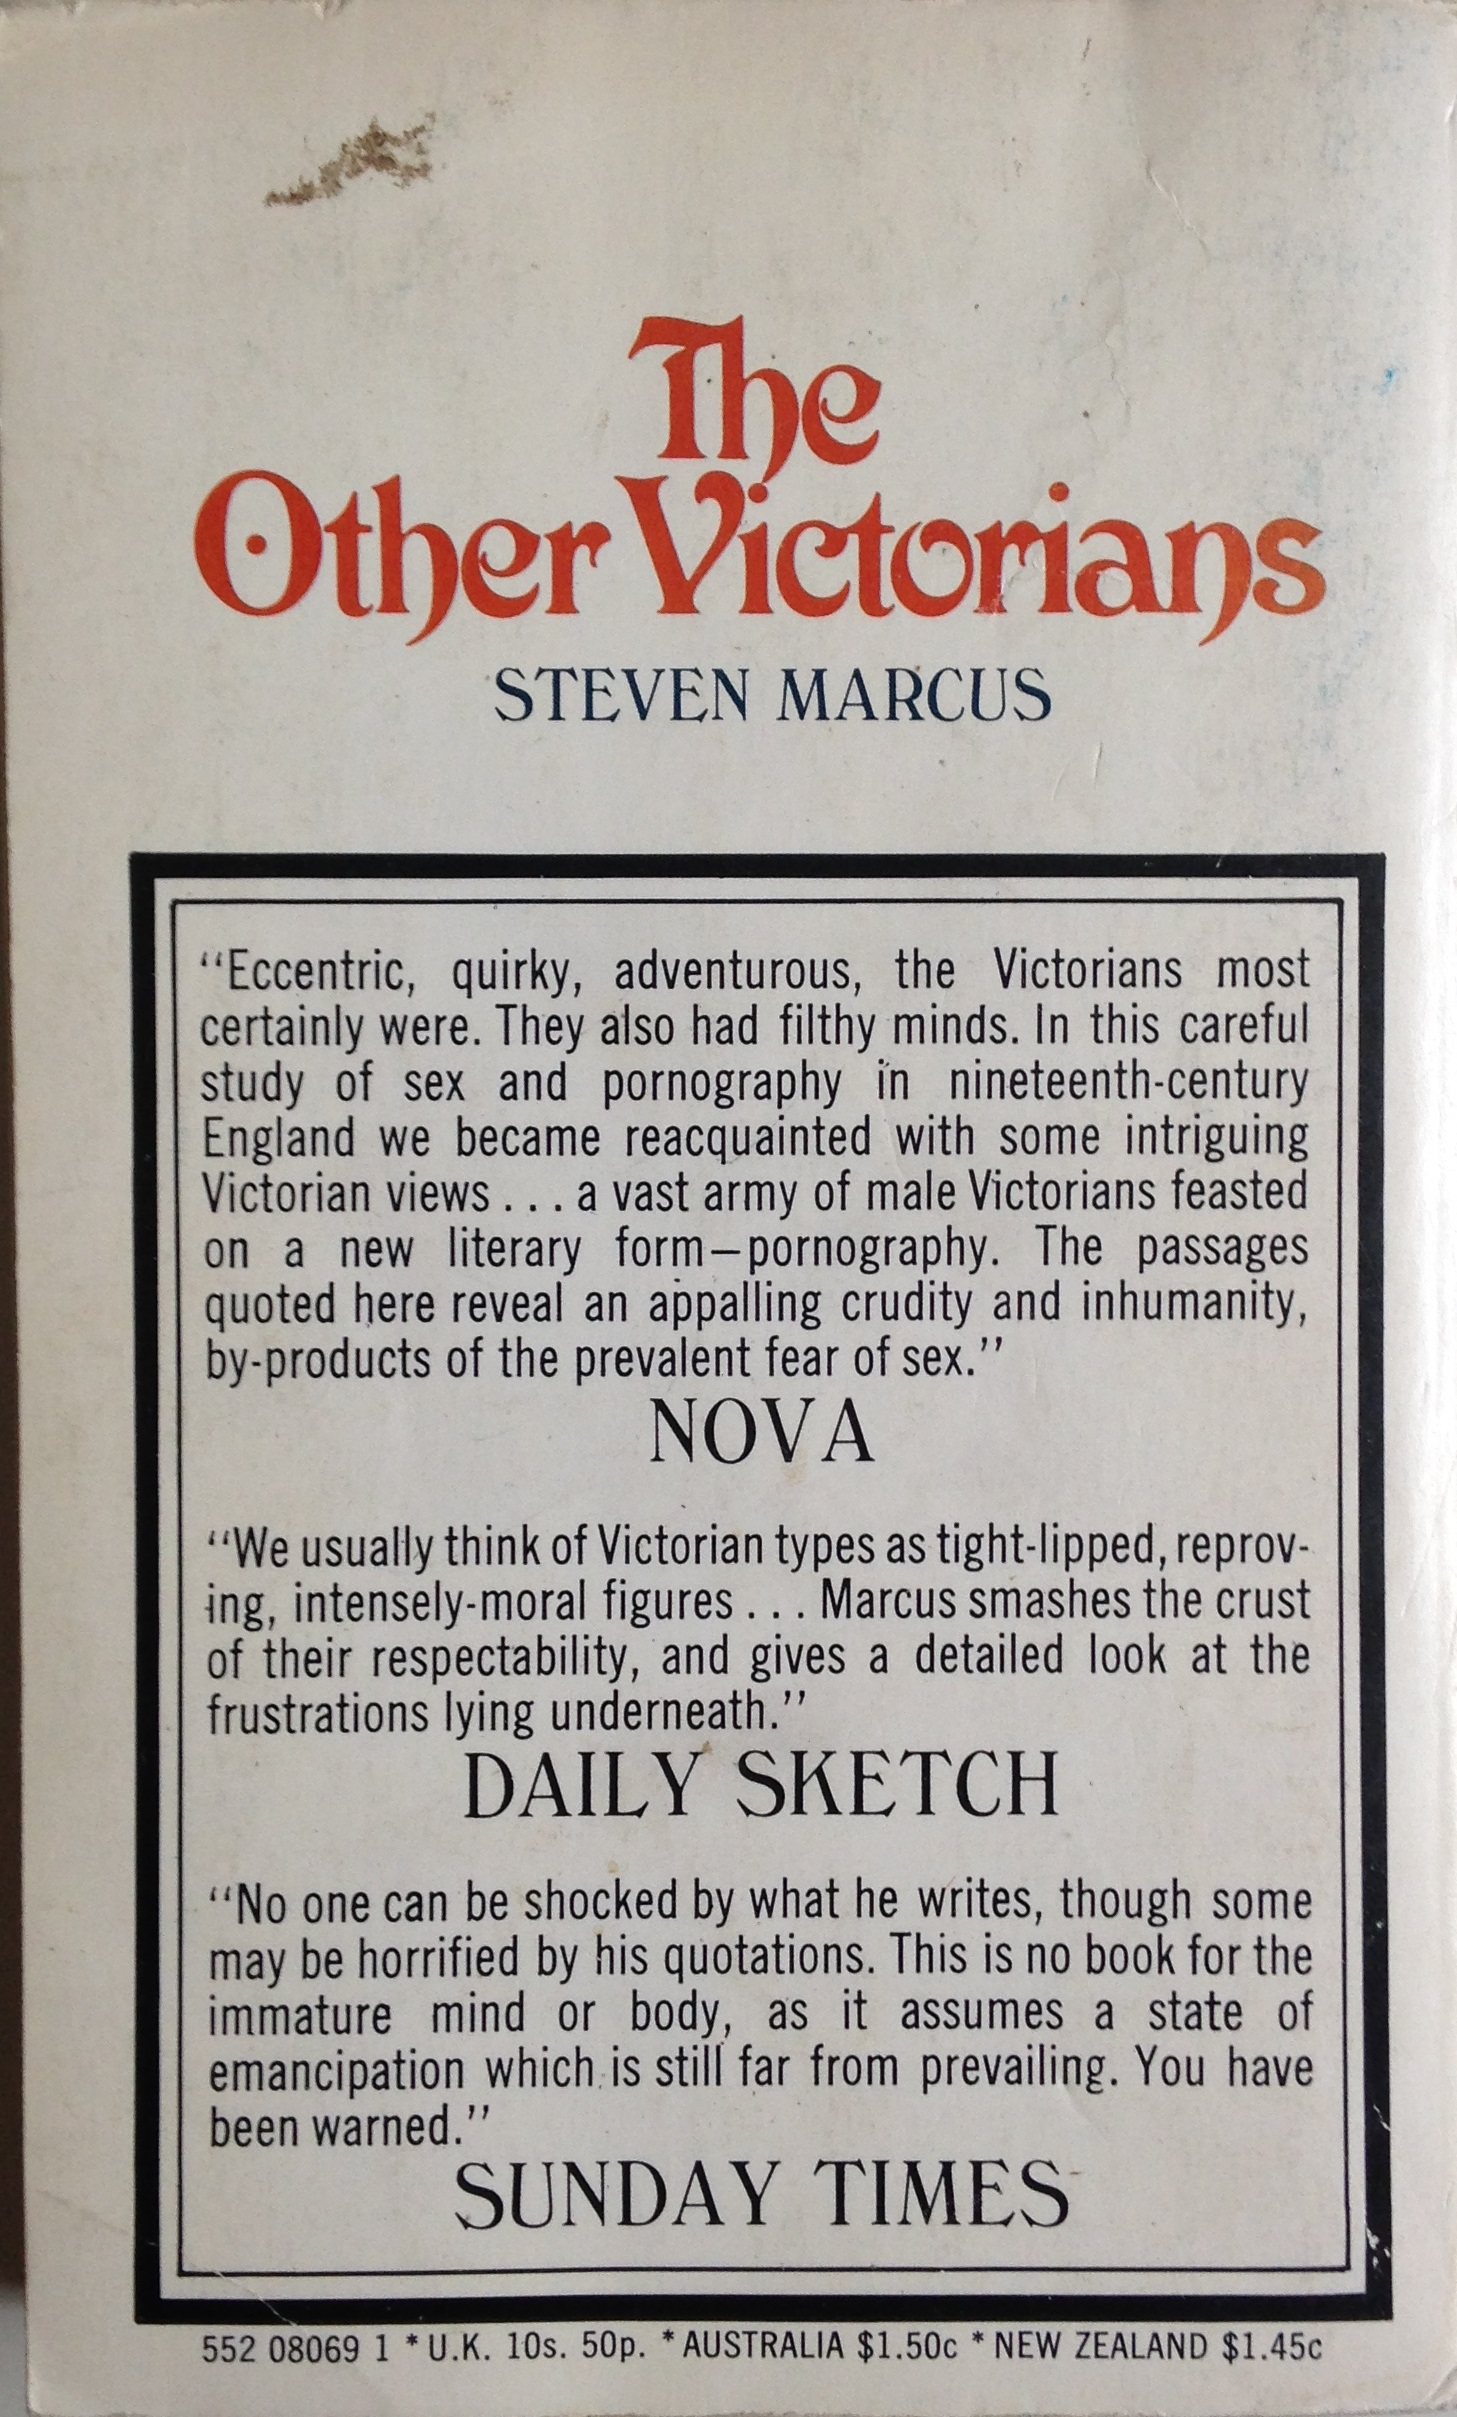 The Other Victorians back cover